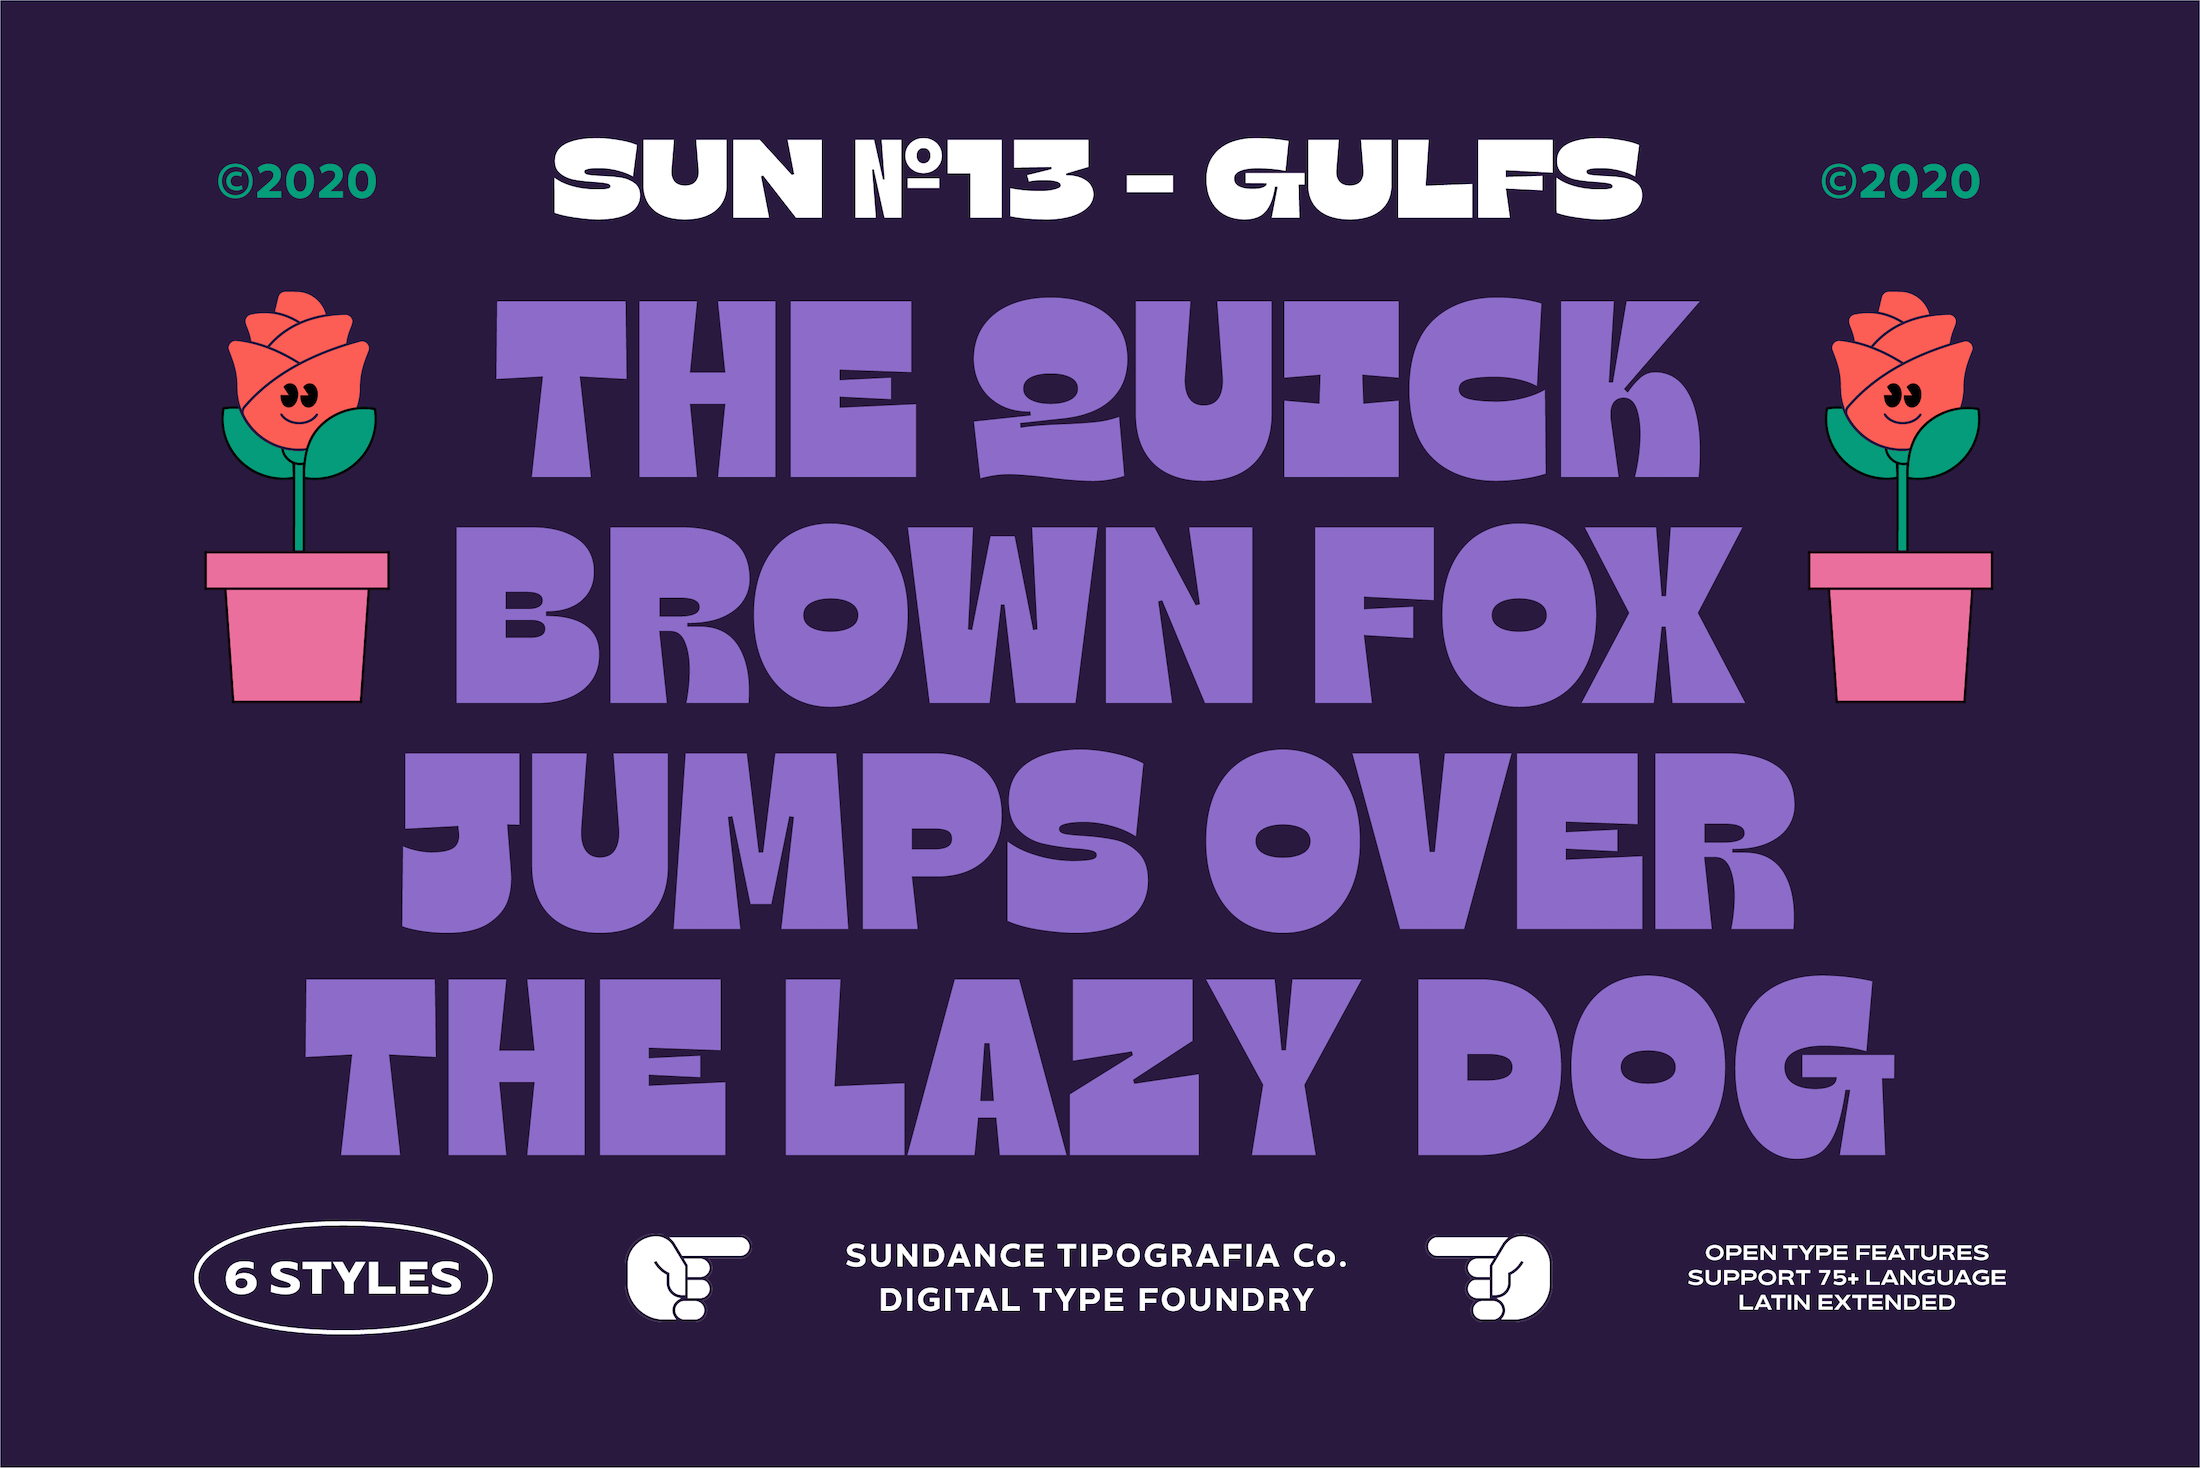 Gulfs is a new display typeface designed by Cahya Sofyan for Typeverything.com